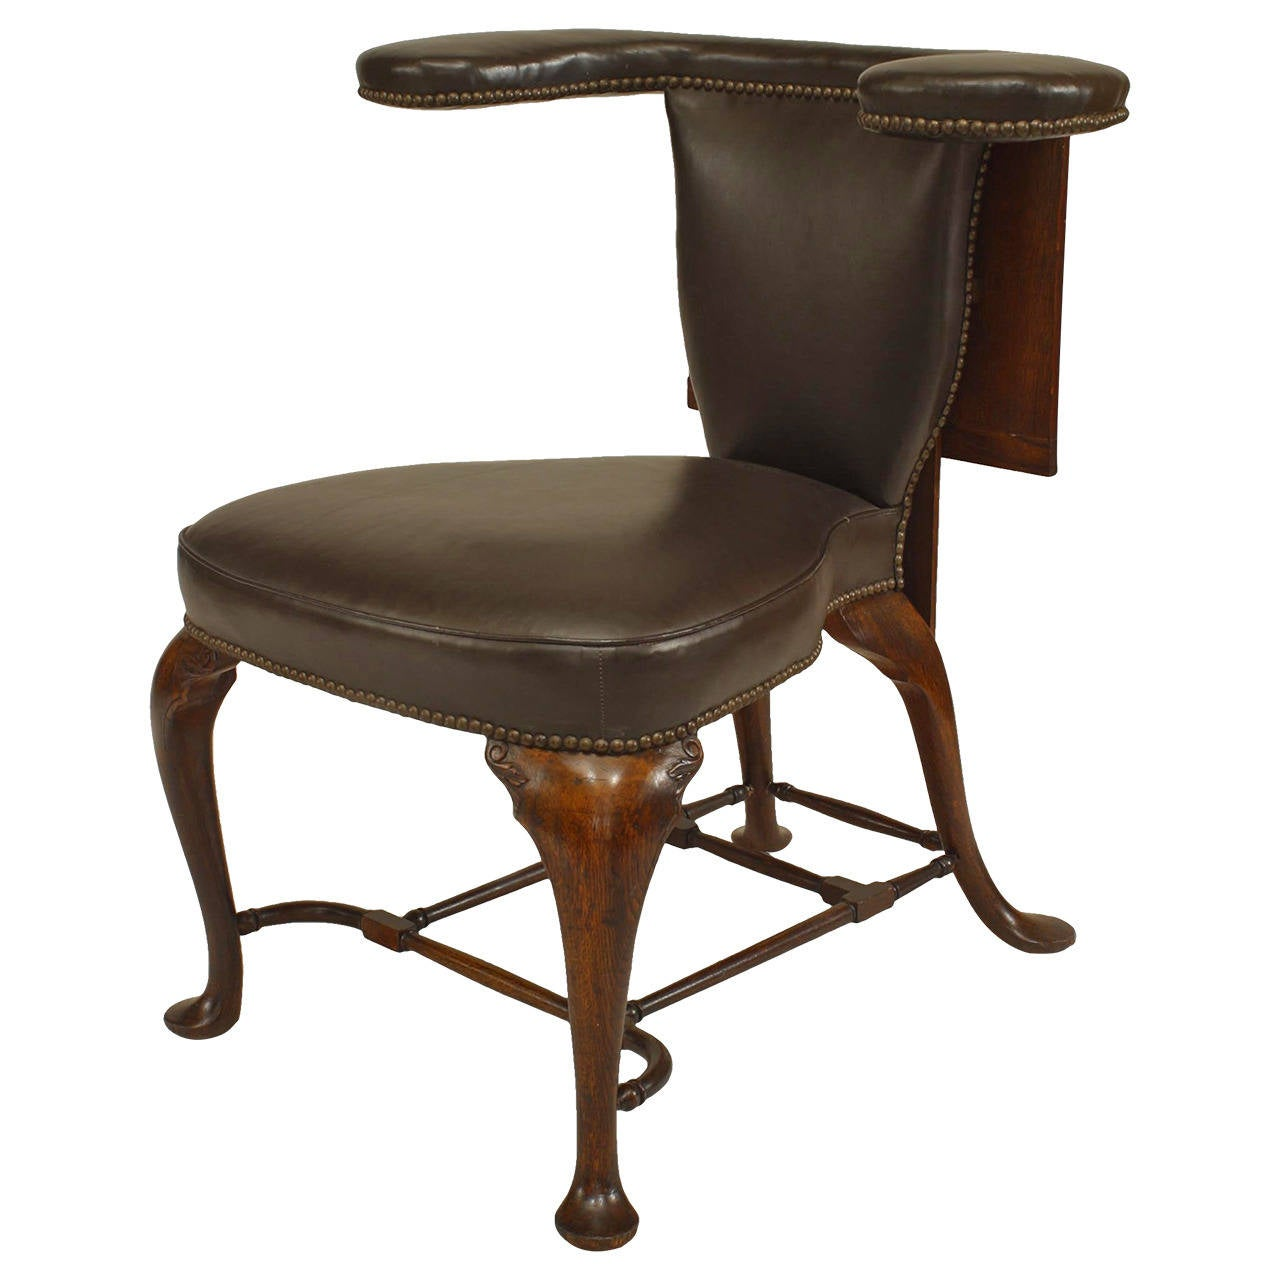 queen anne style chair tommy bahama fold up instructions 19th century english leather upholstered